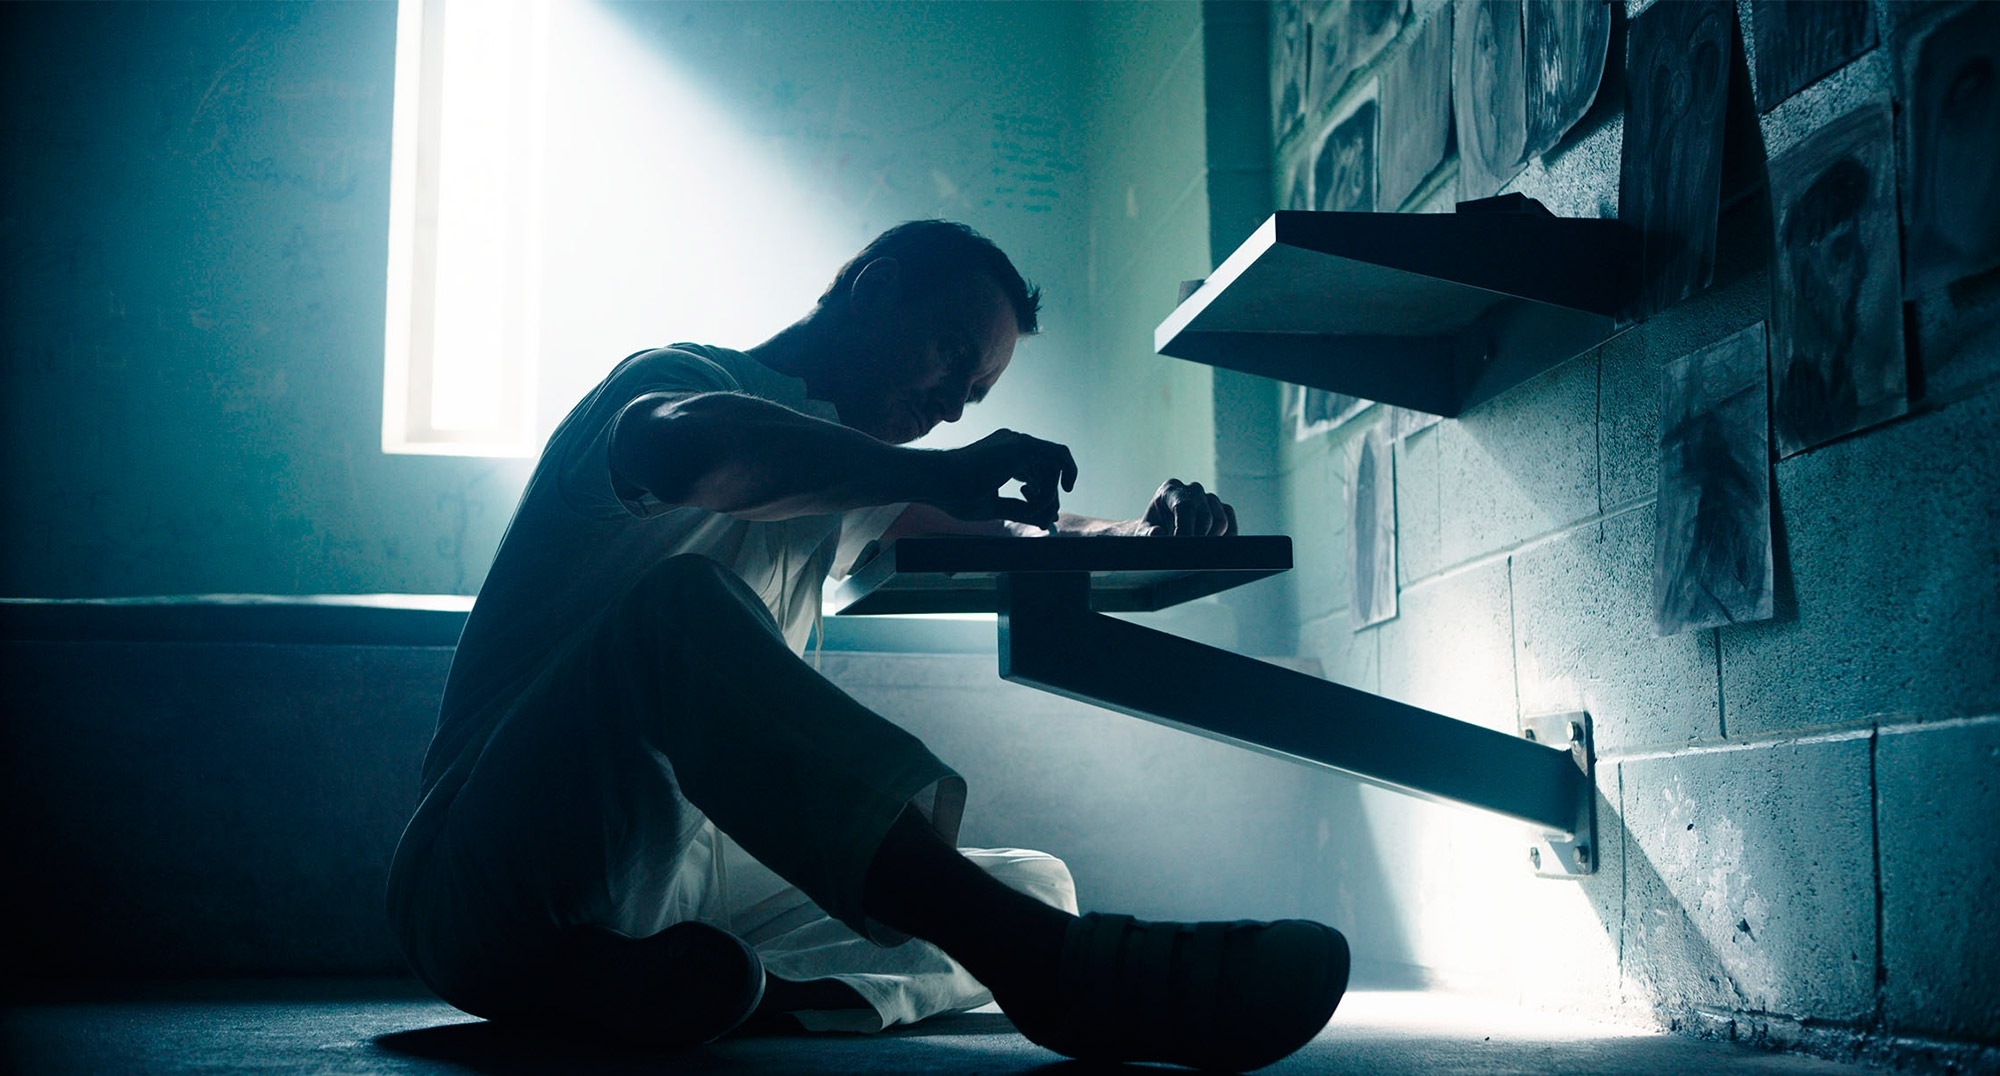 assassin's creed il film callum prigione